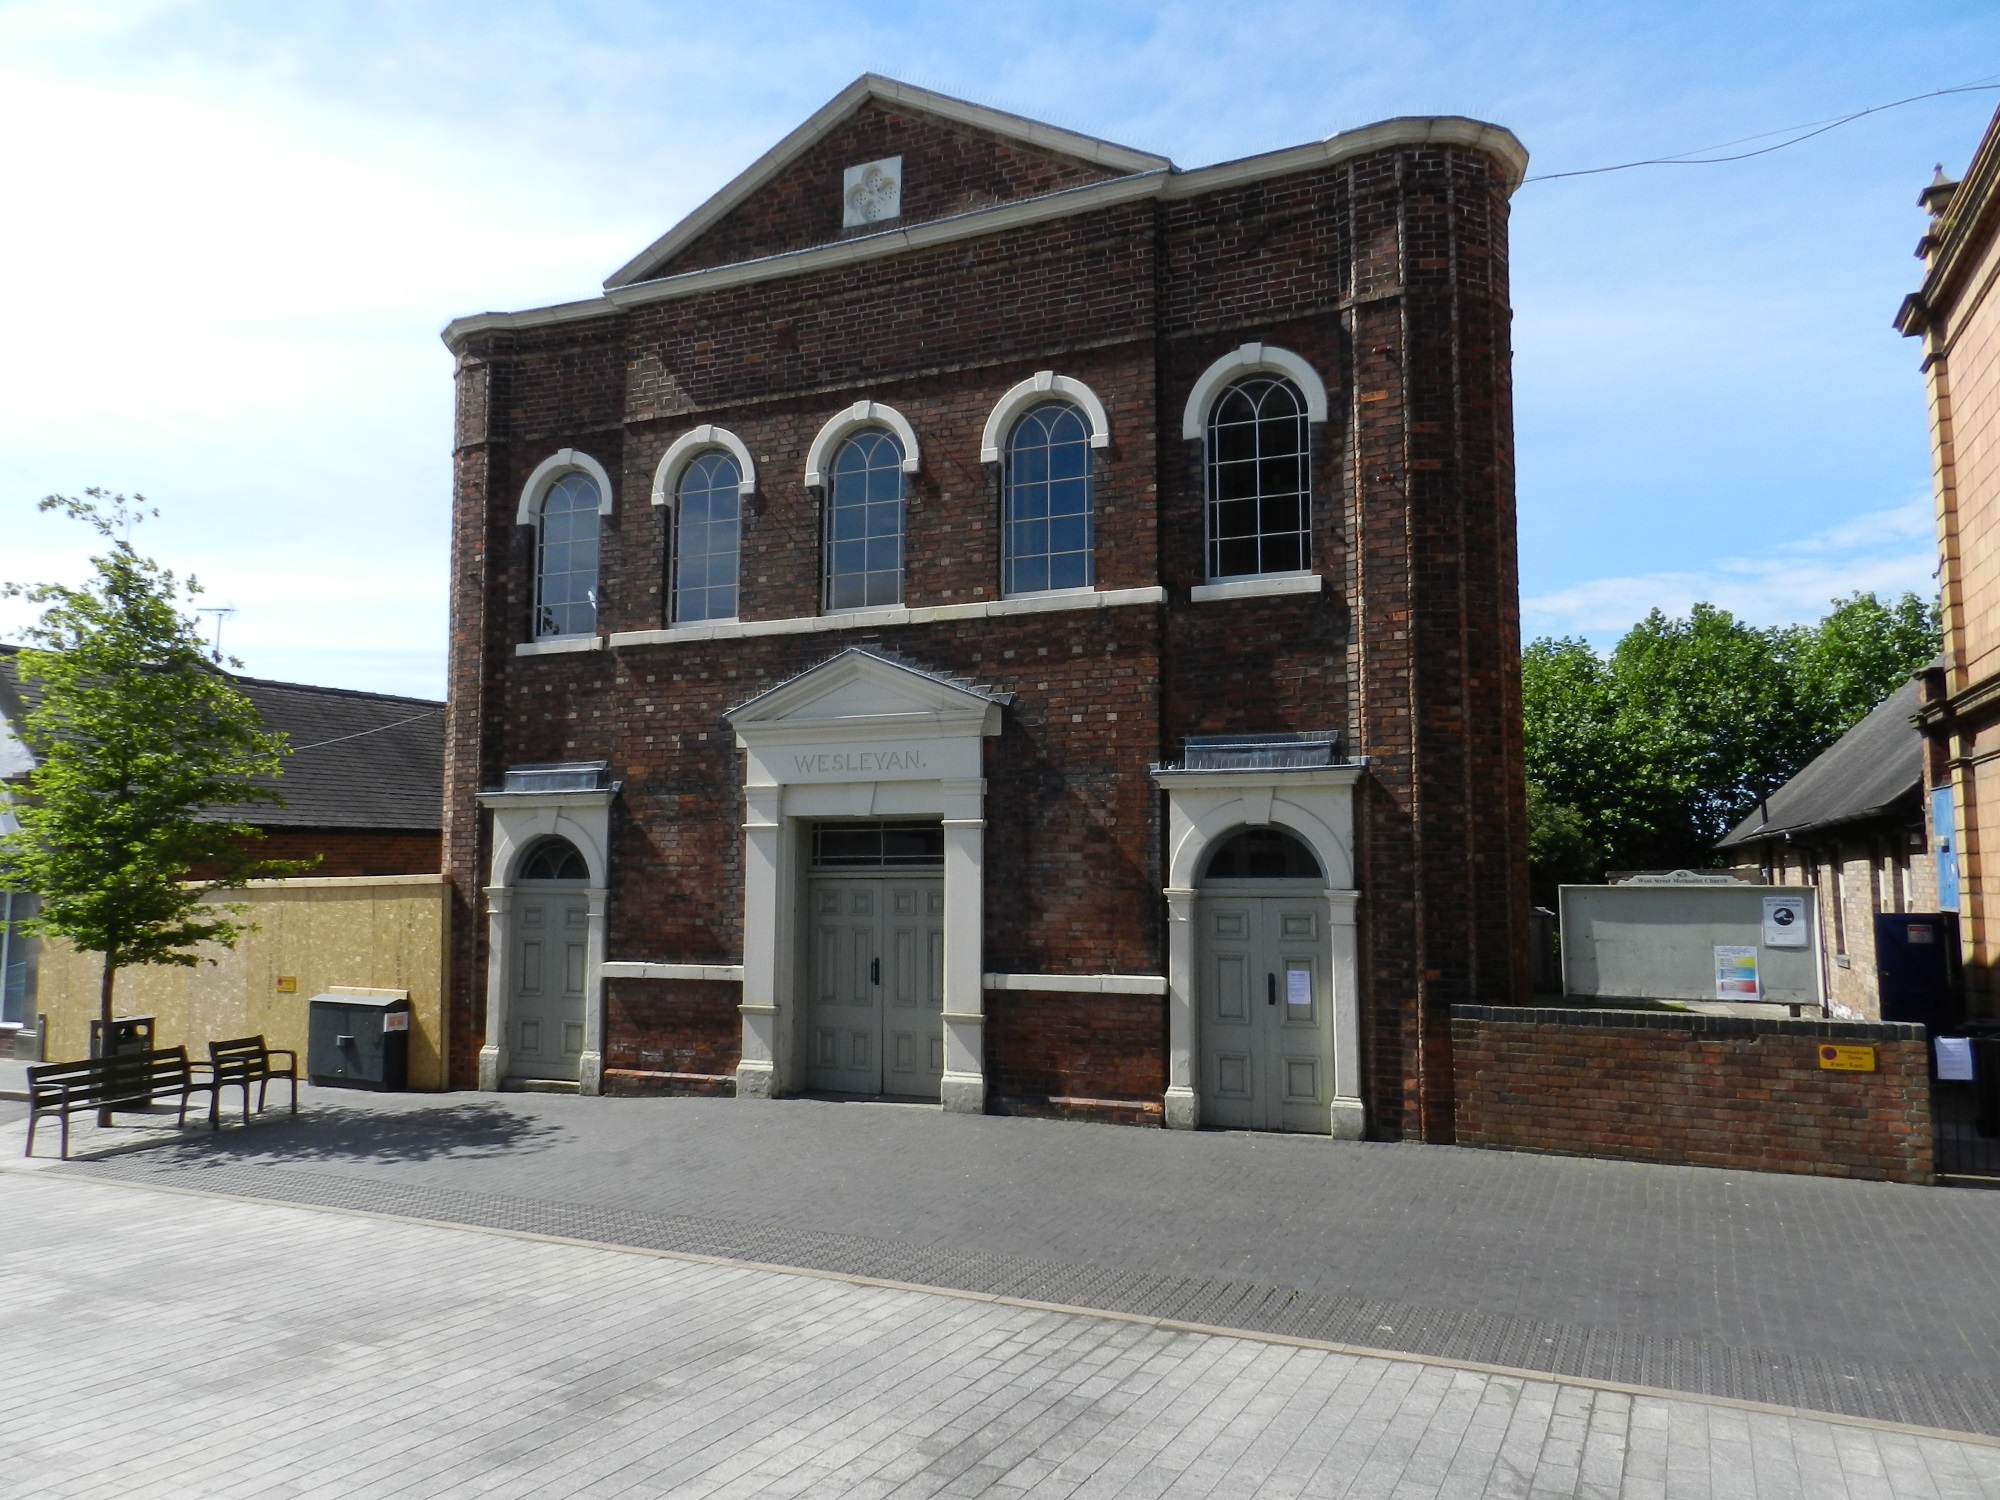 Church Sells at Derby Auction